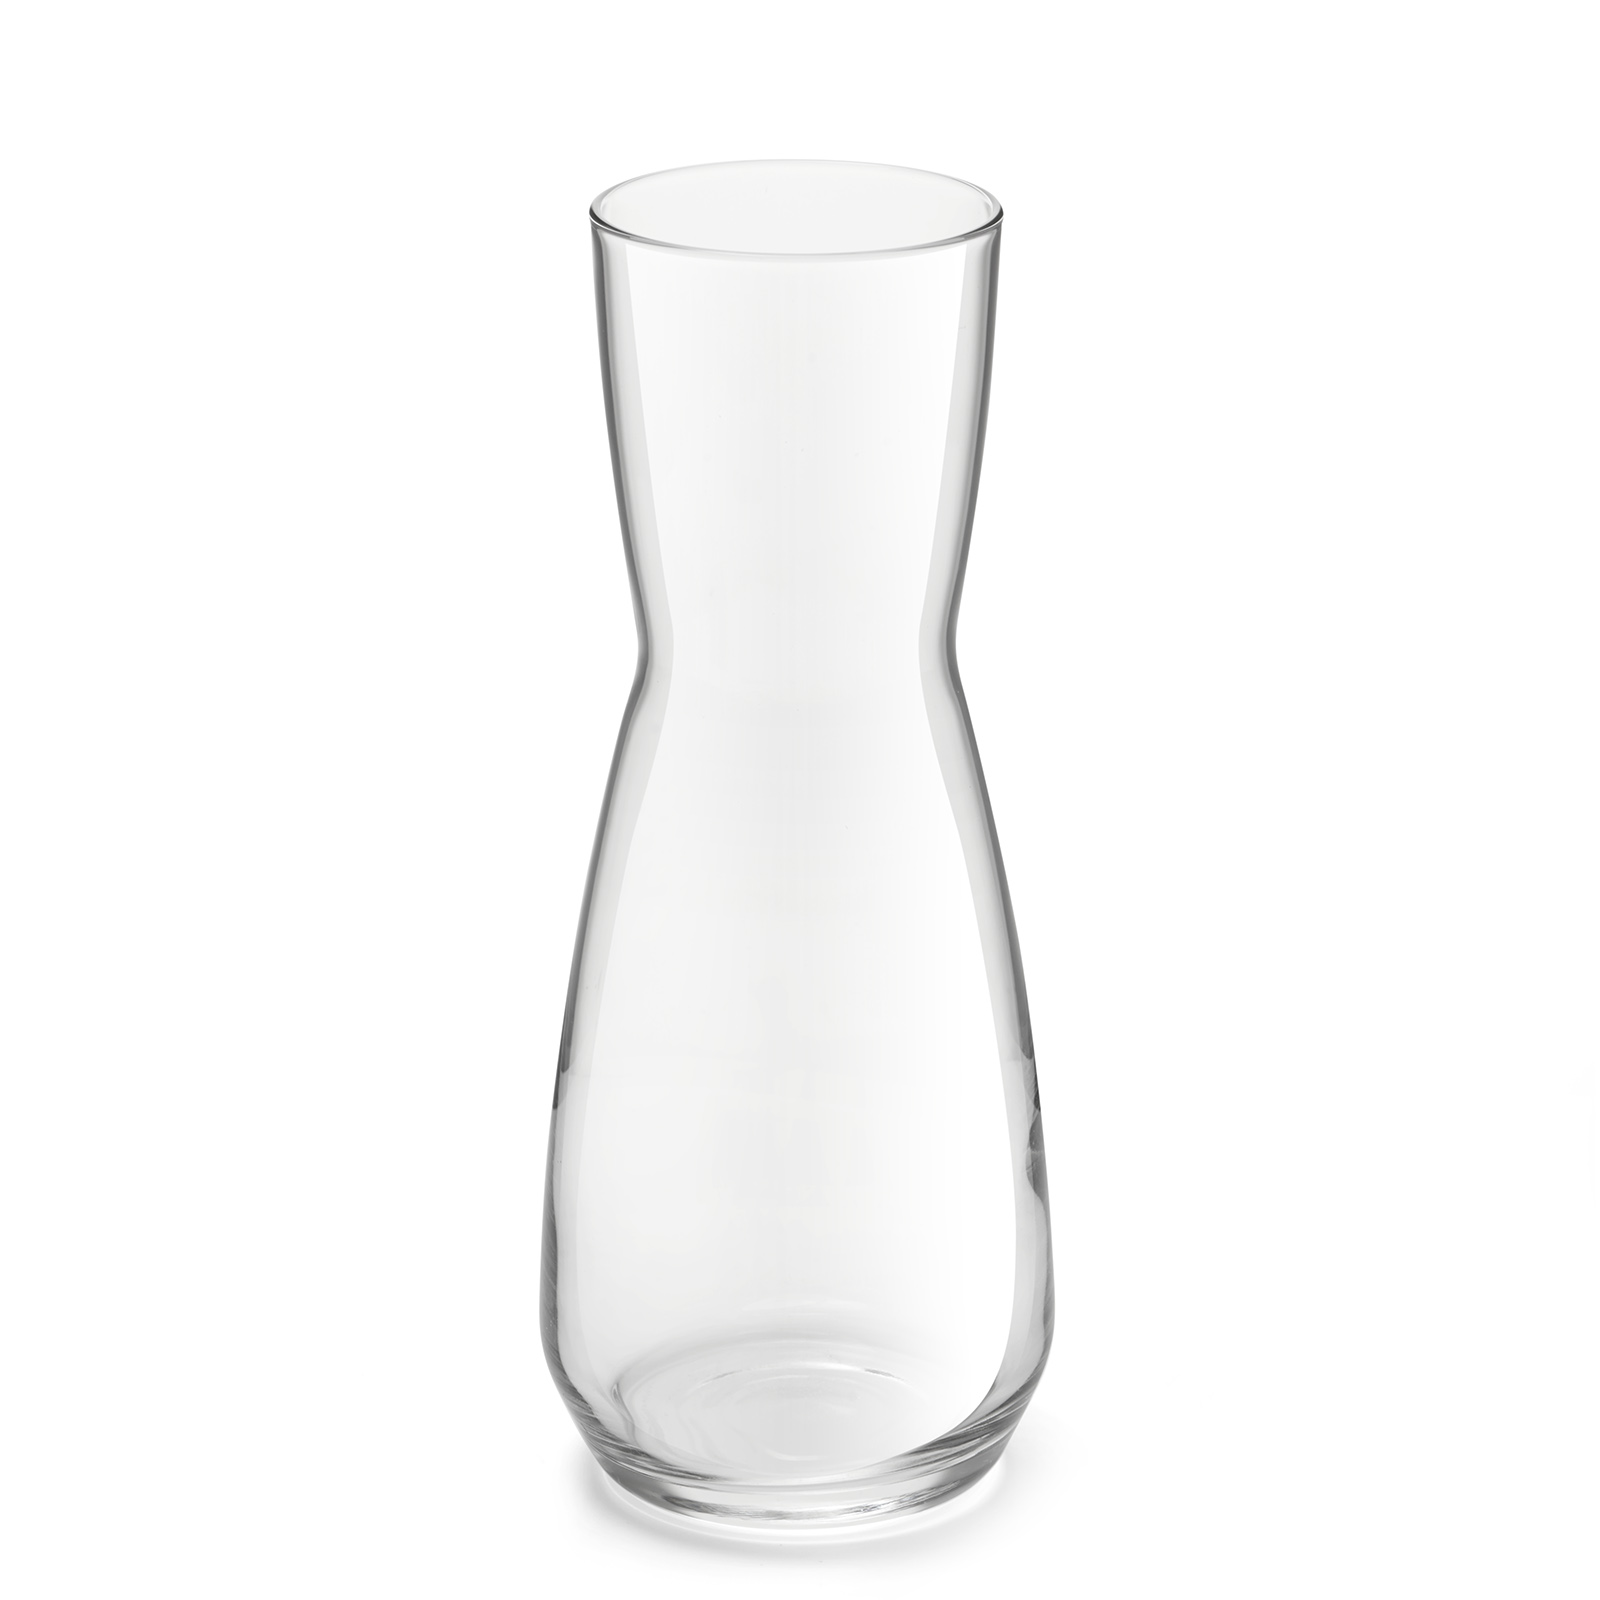 Libbey Glass 927634 decanter carafe